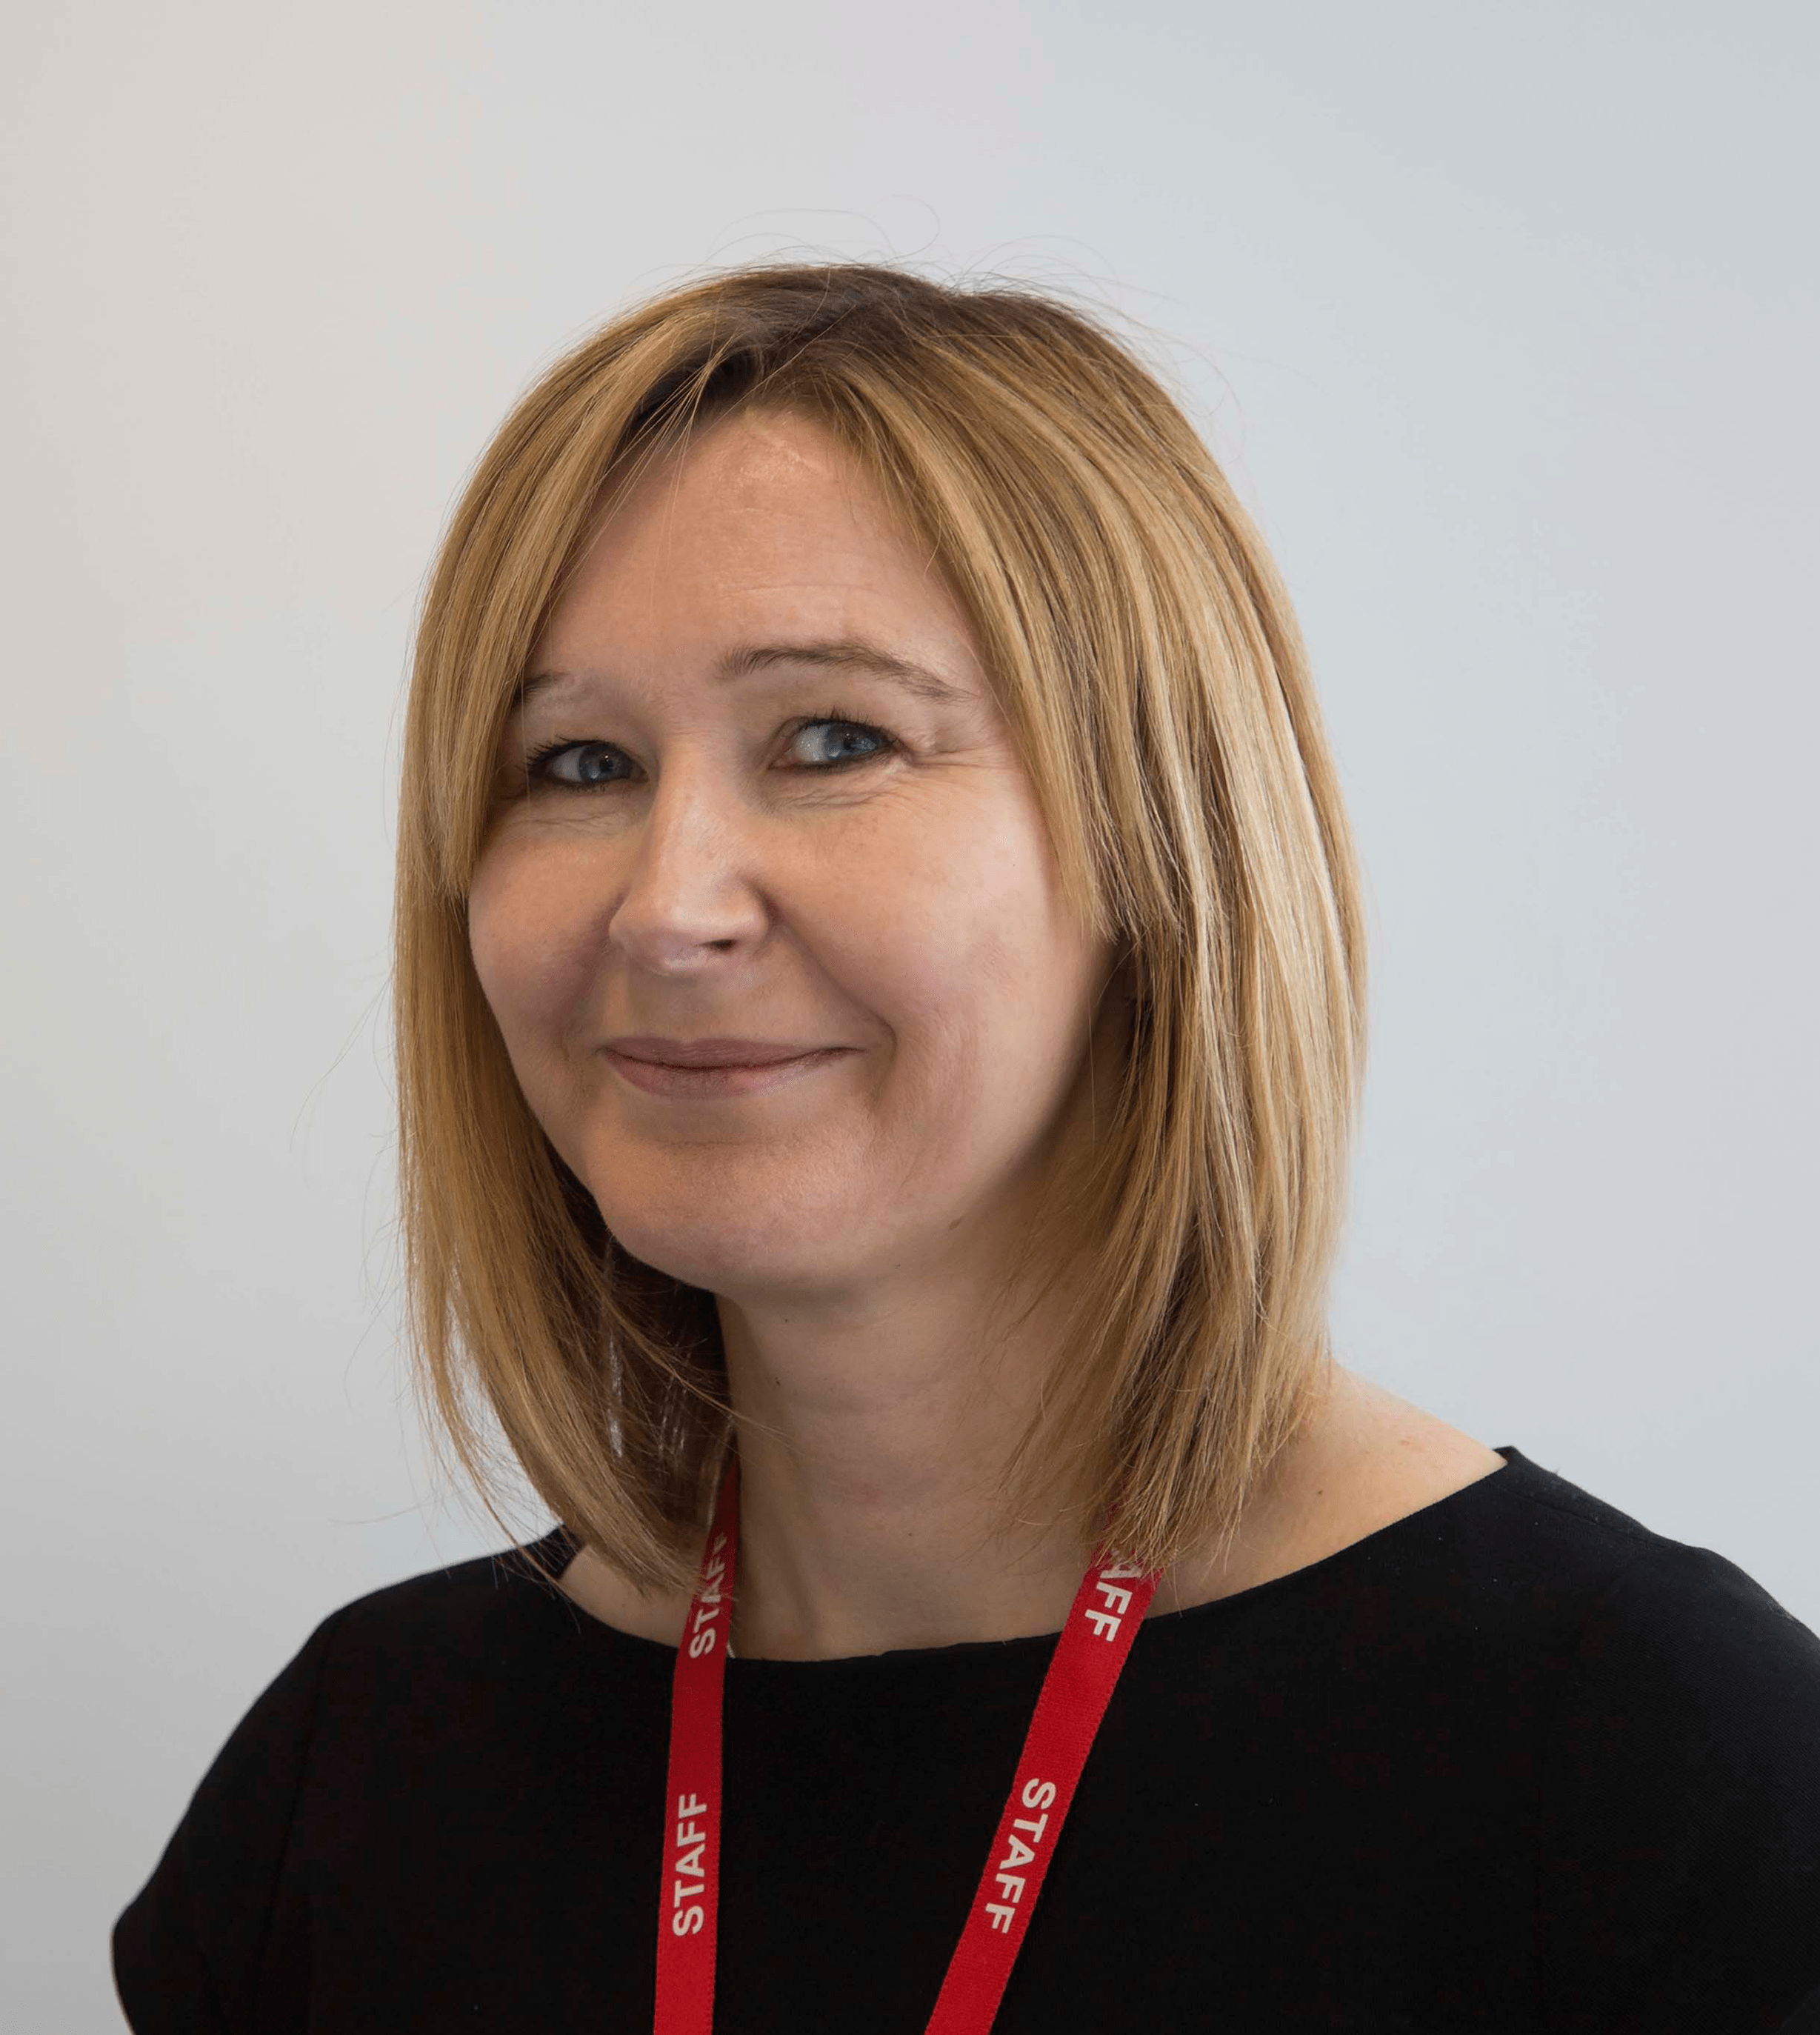 A headshot photograph of Liz Wright, Red Hen Project Manager